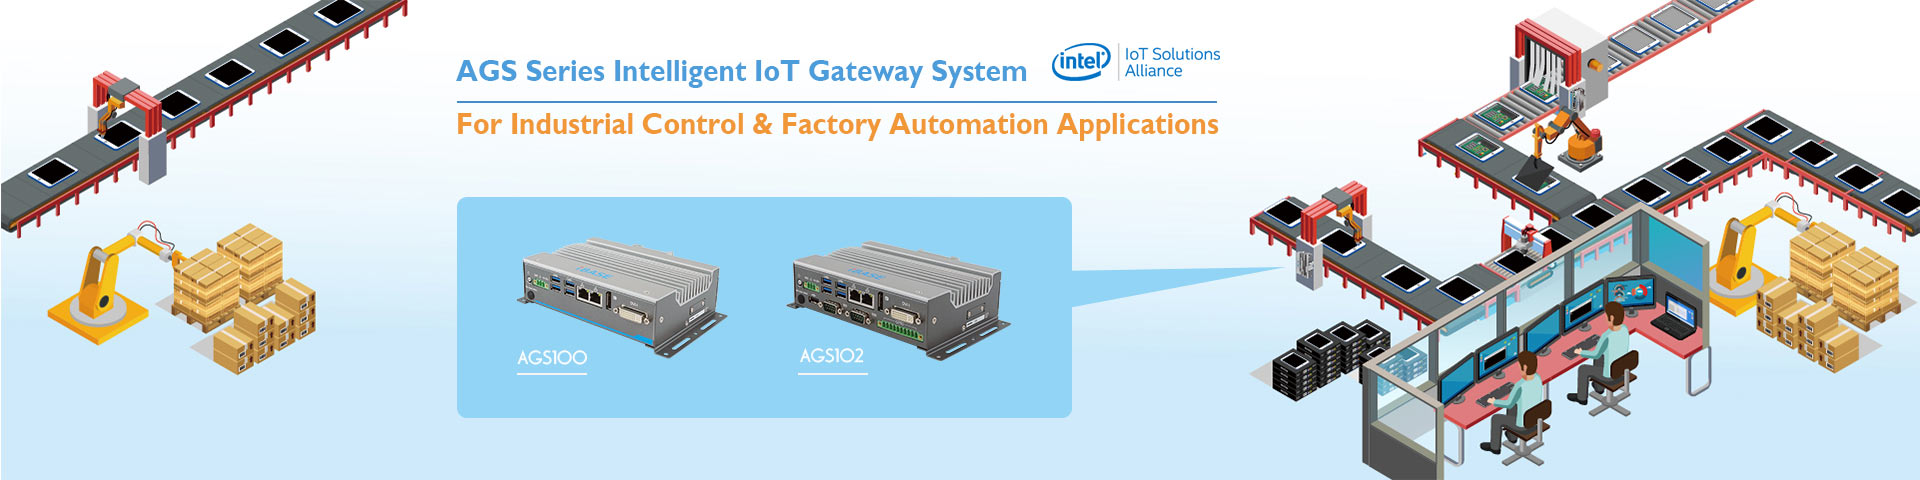 AGS Series Intelligent IoT Gateway System